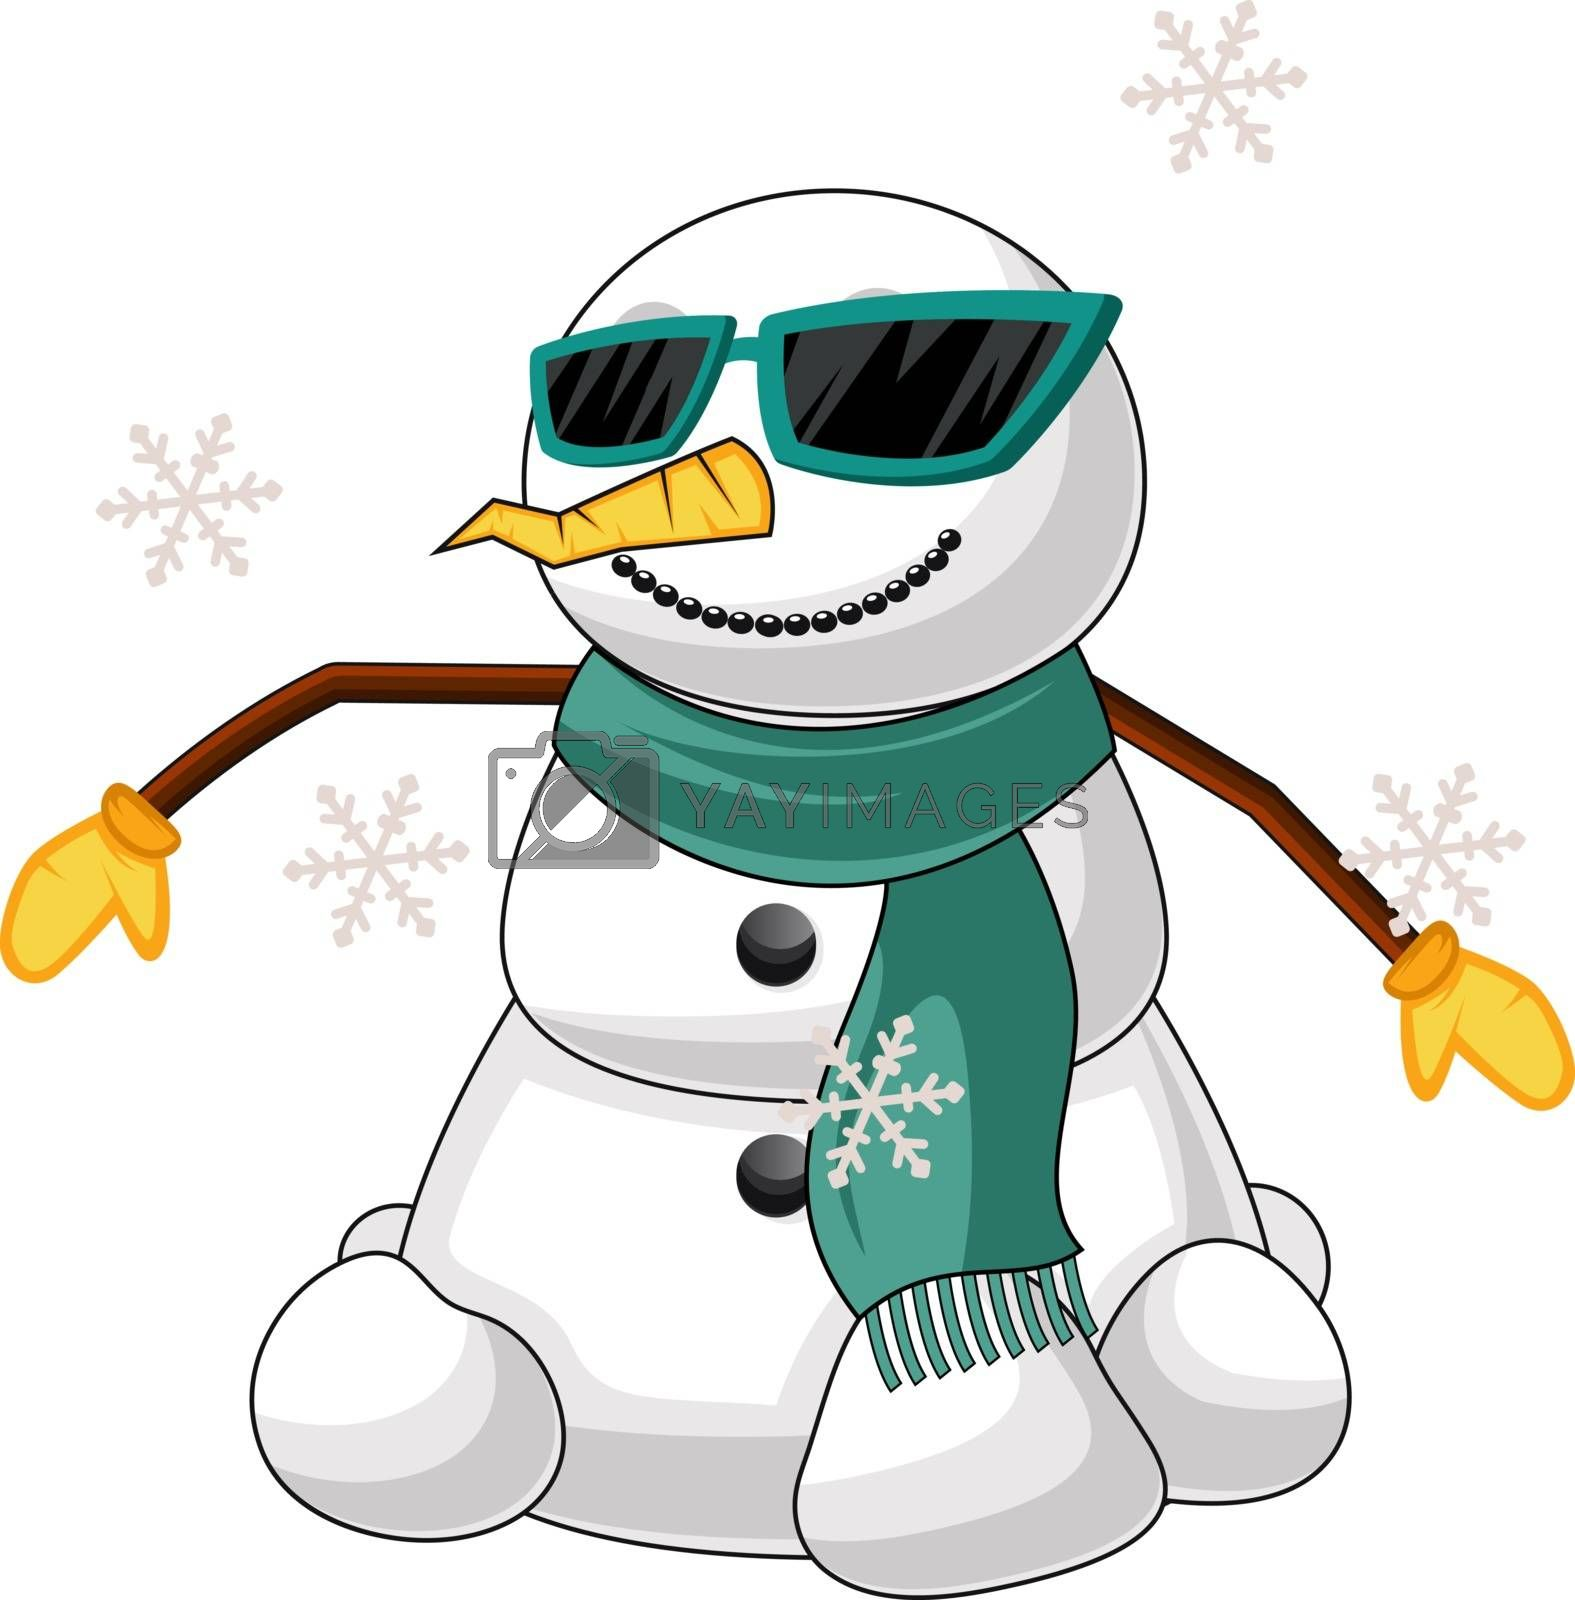 Royalty free image of Cool snowman illustration vector on white background by Morphart